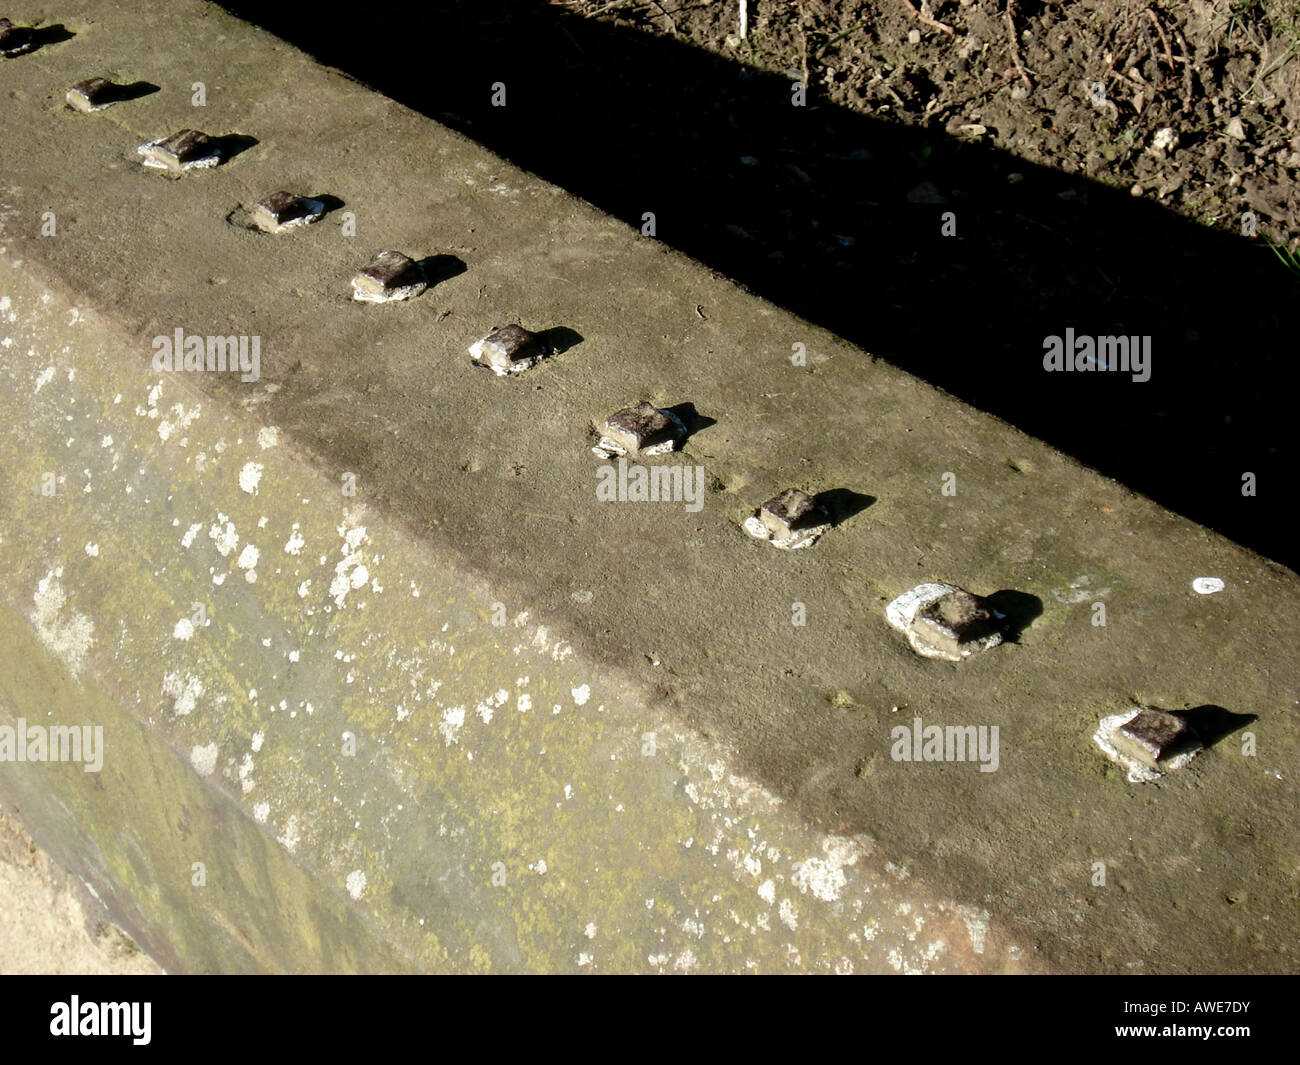 Sawn off railings from world war two - Stock Image